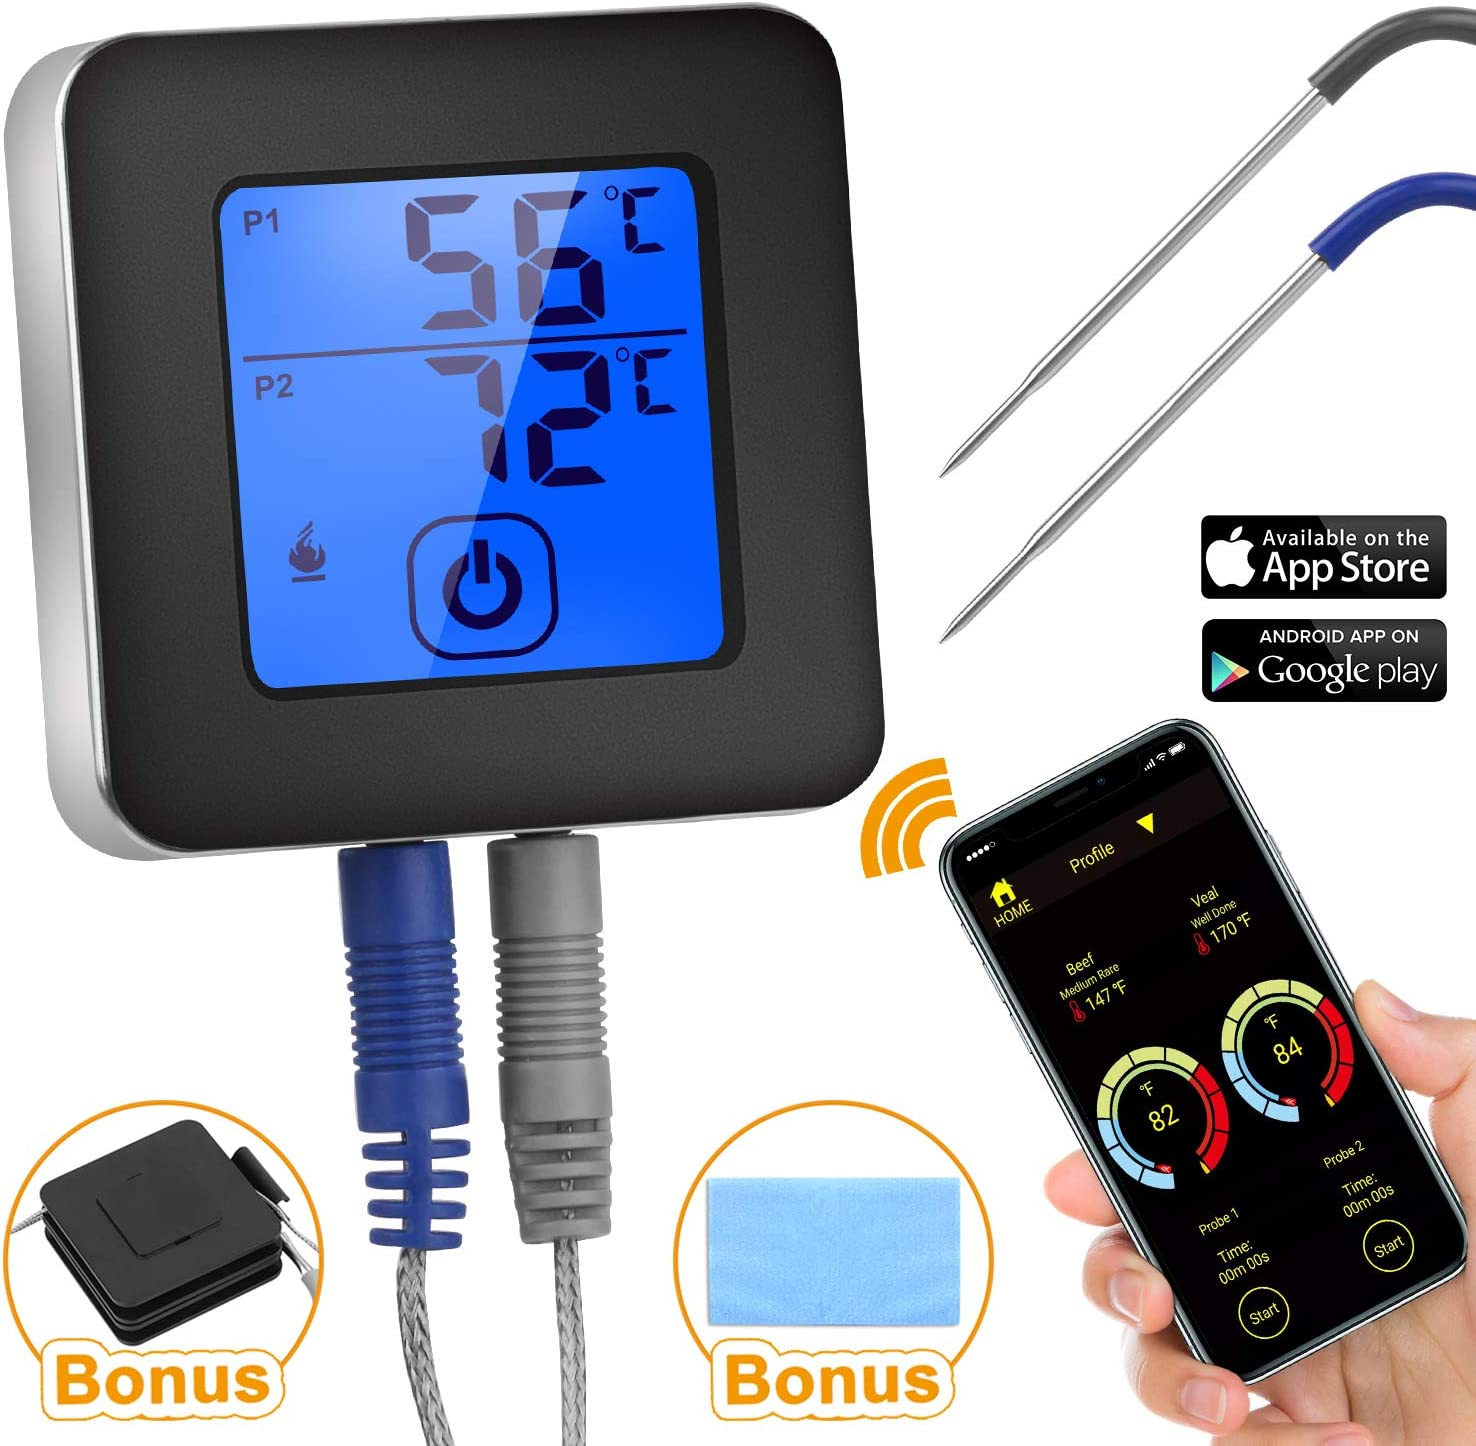 Remote Meat Thermometer with 2 Probes 4 Cooking Target and 9 Meat Cooking Mode Included Grease Clean Bonus Instant Read Stove Thermometer for Grilling Smoker